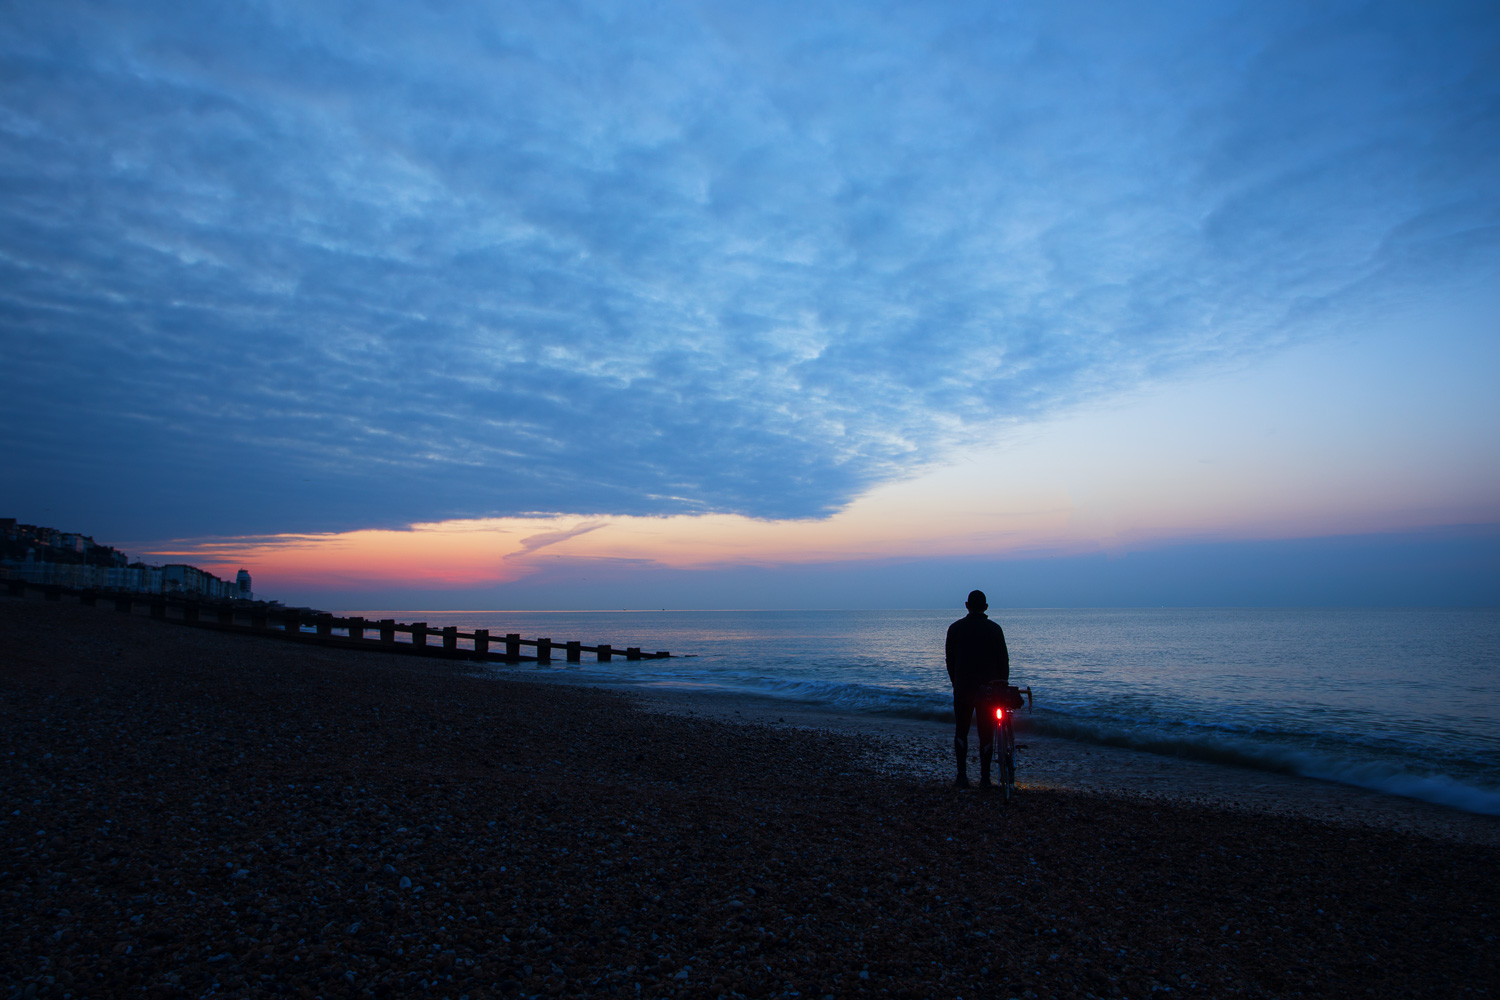 Man with bicycle standing on beach in pretty light just before dawn